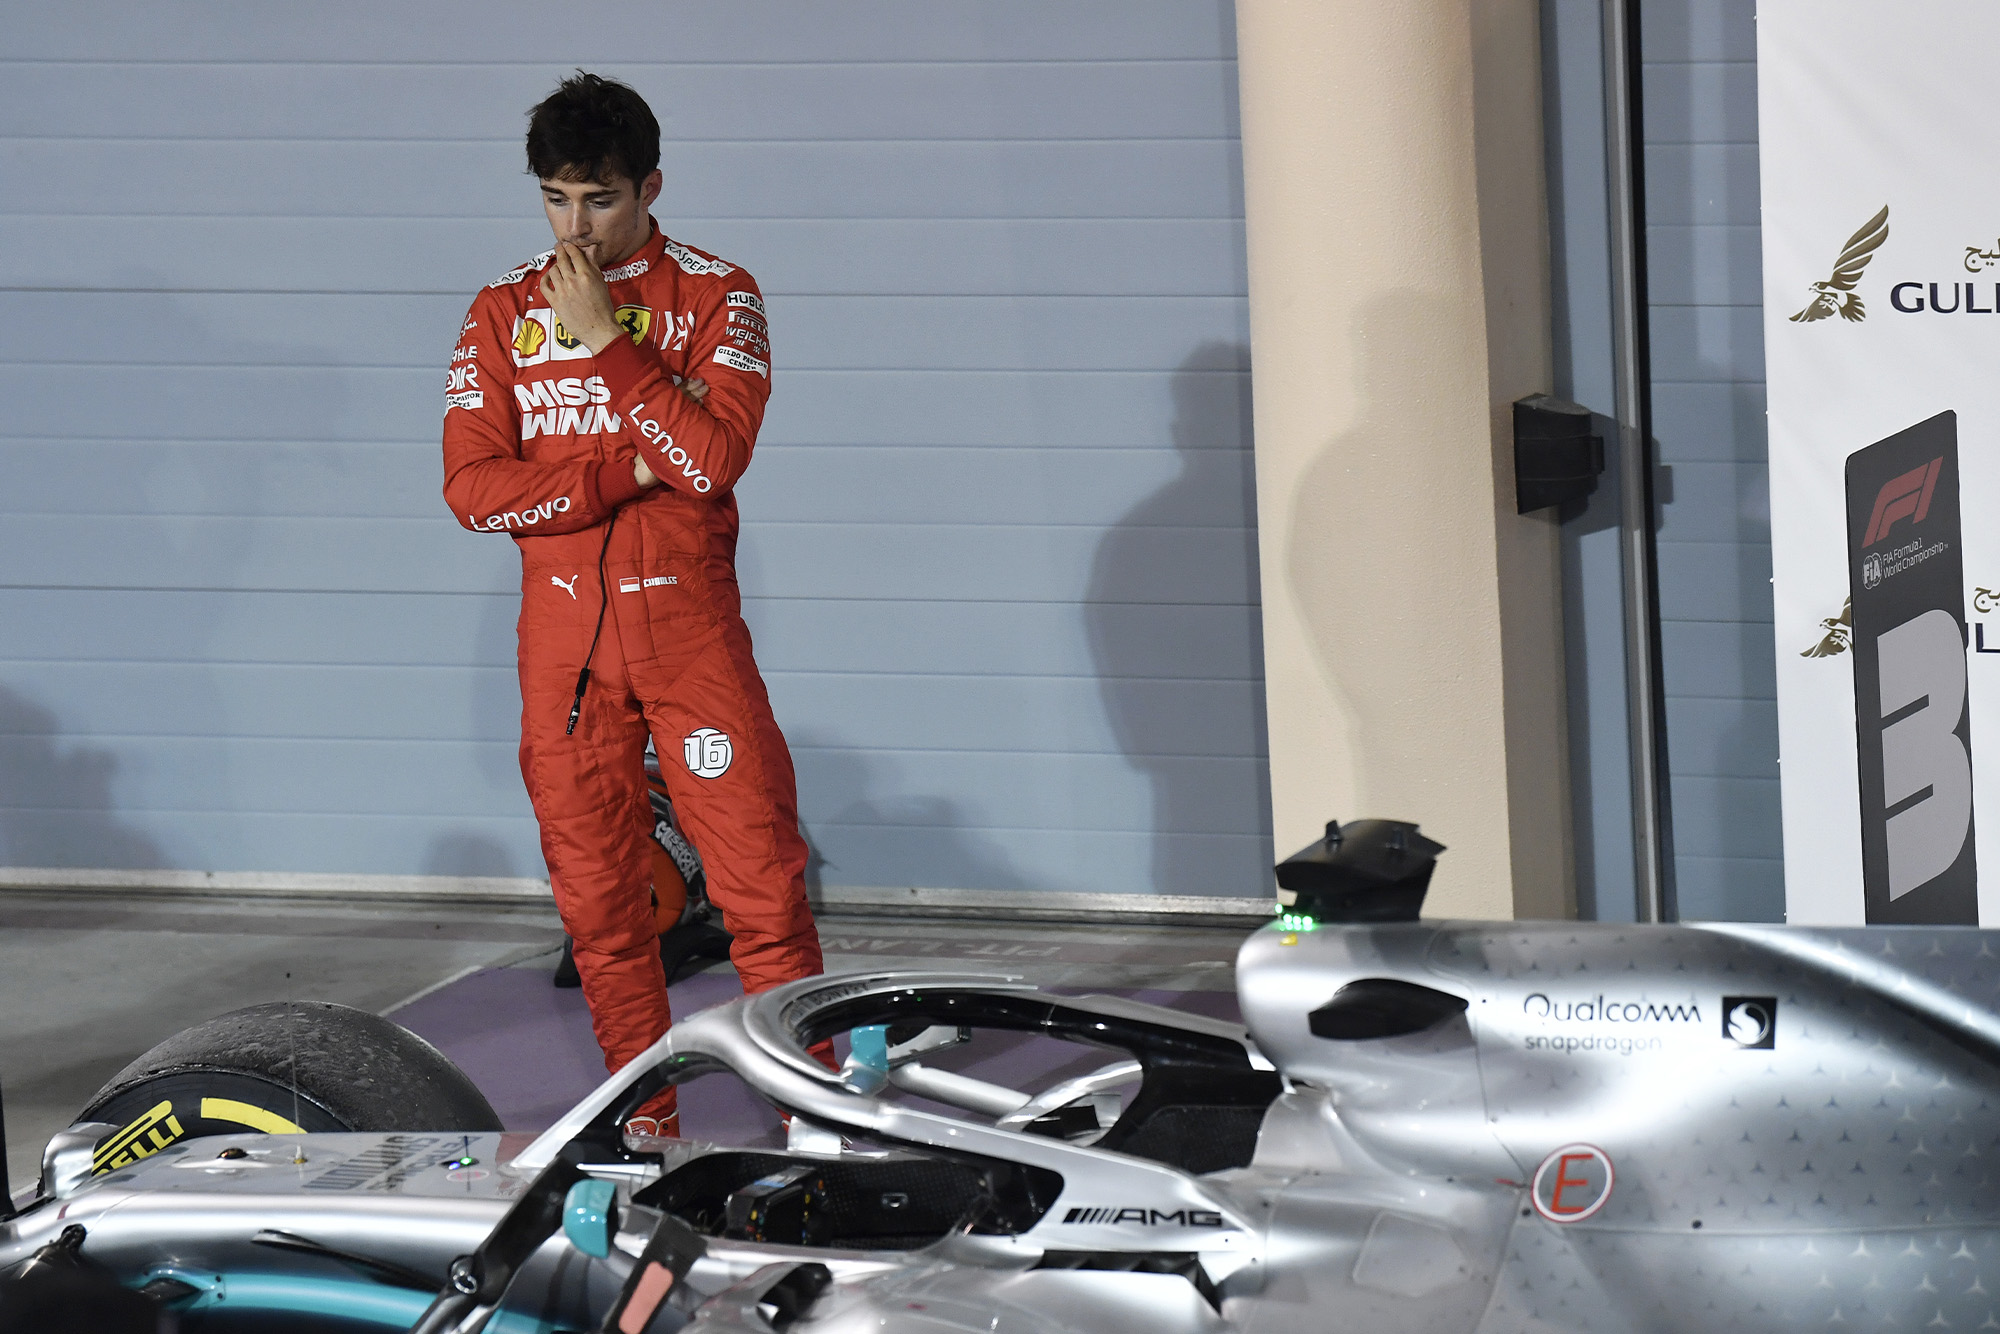 Charles Leclerc reflects on an opportunity missed after the Bahrain Grand Prix